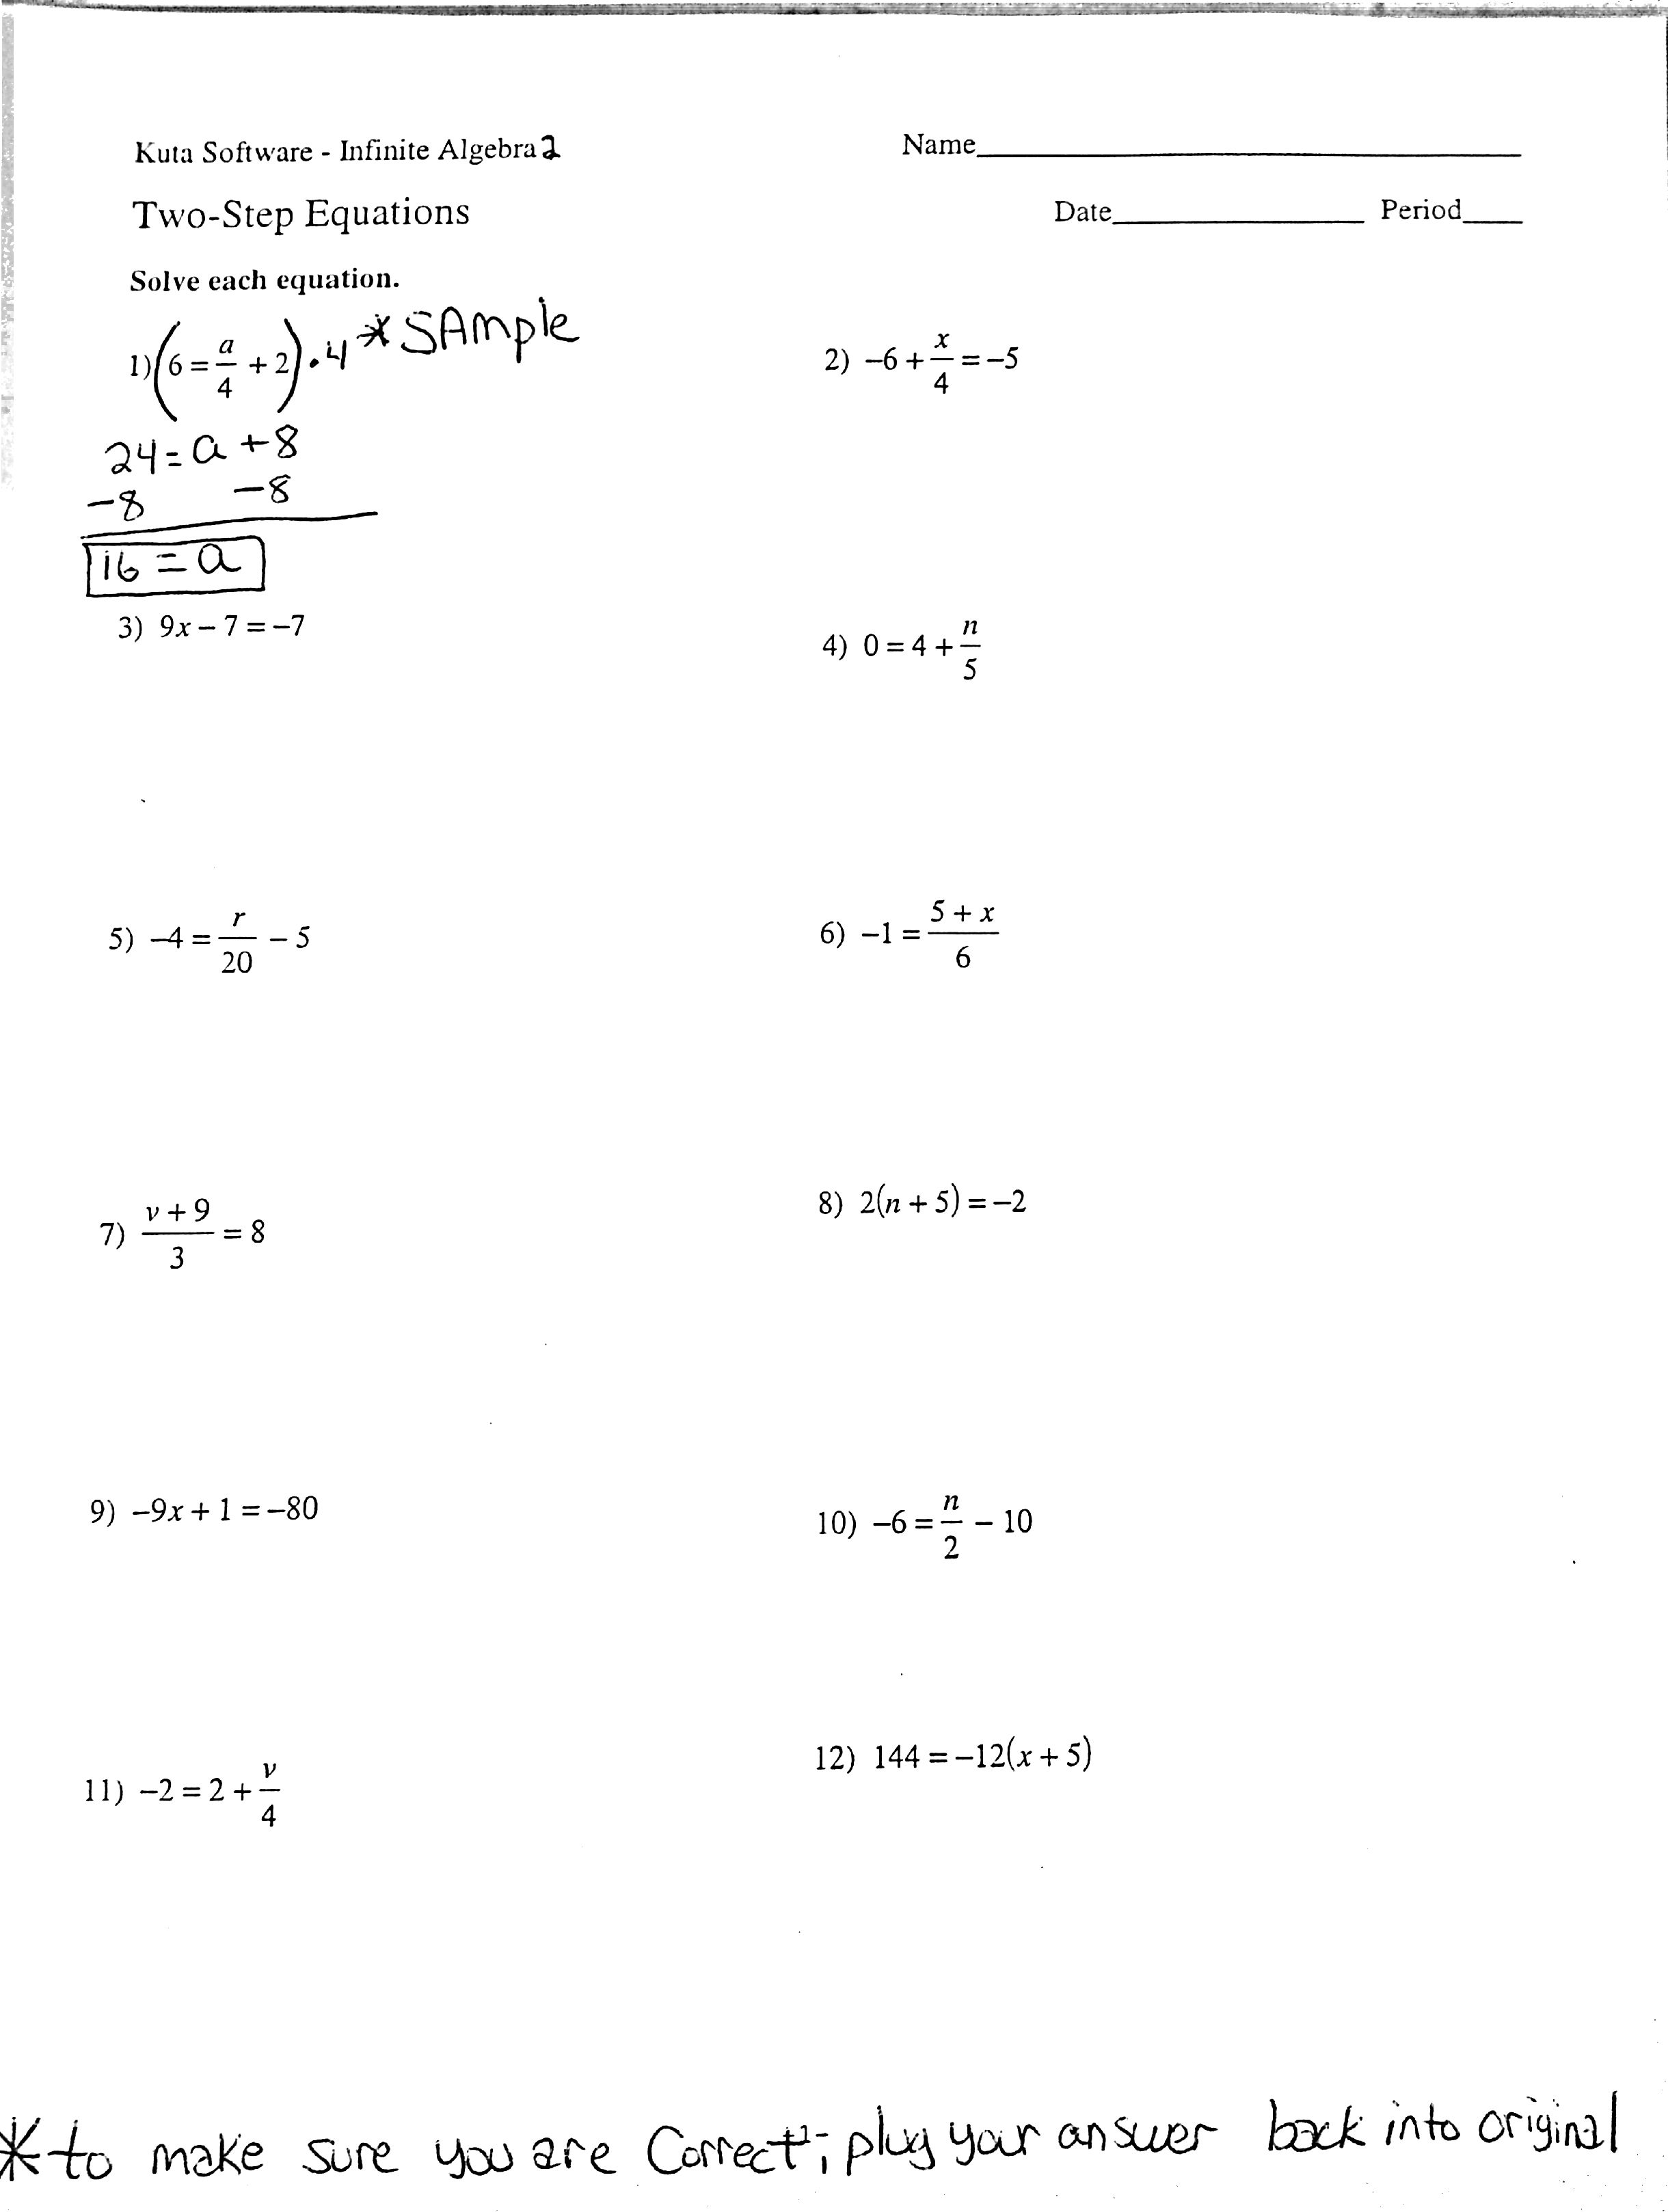 Worksheets One And Two Step Equations Worksheet printables 2 step algebra equations worksheets tempojs thousands one worksheet answers abtd answers